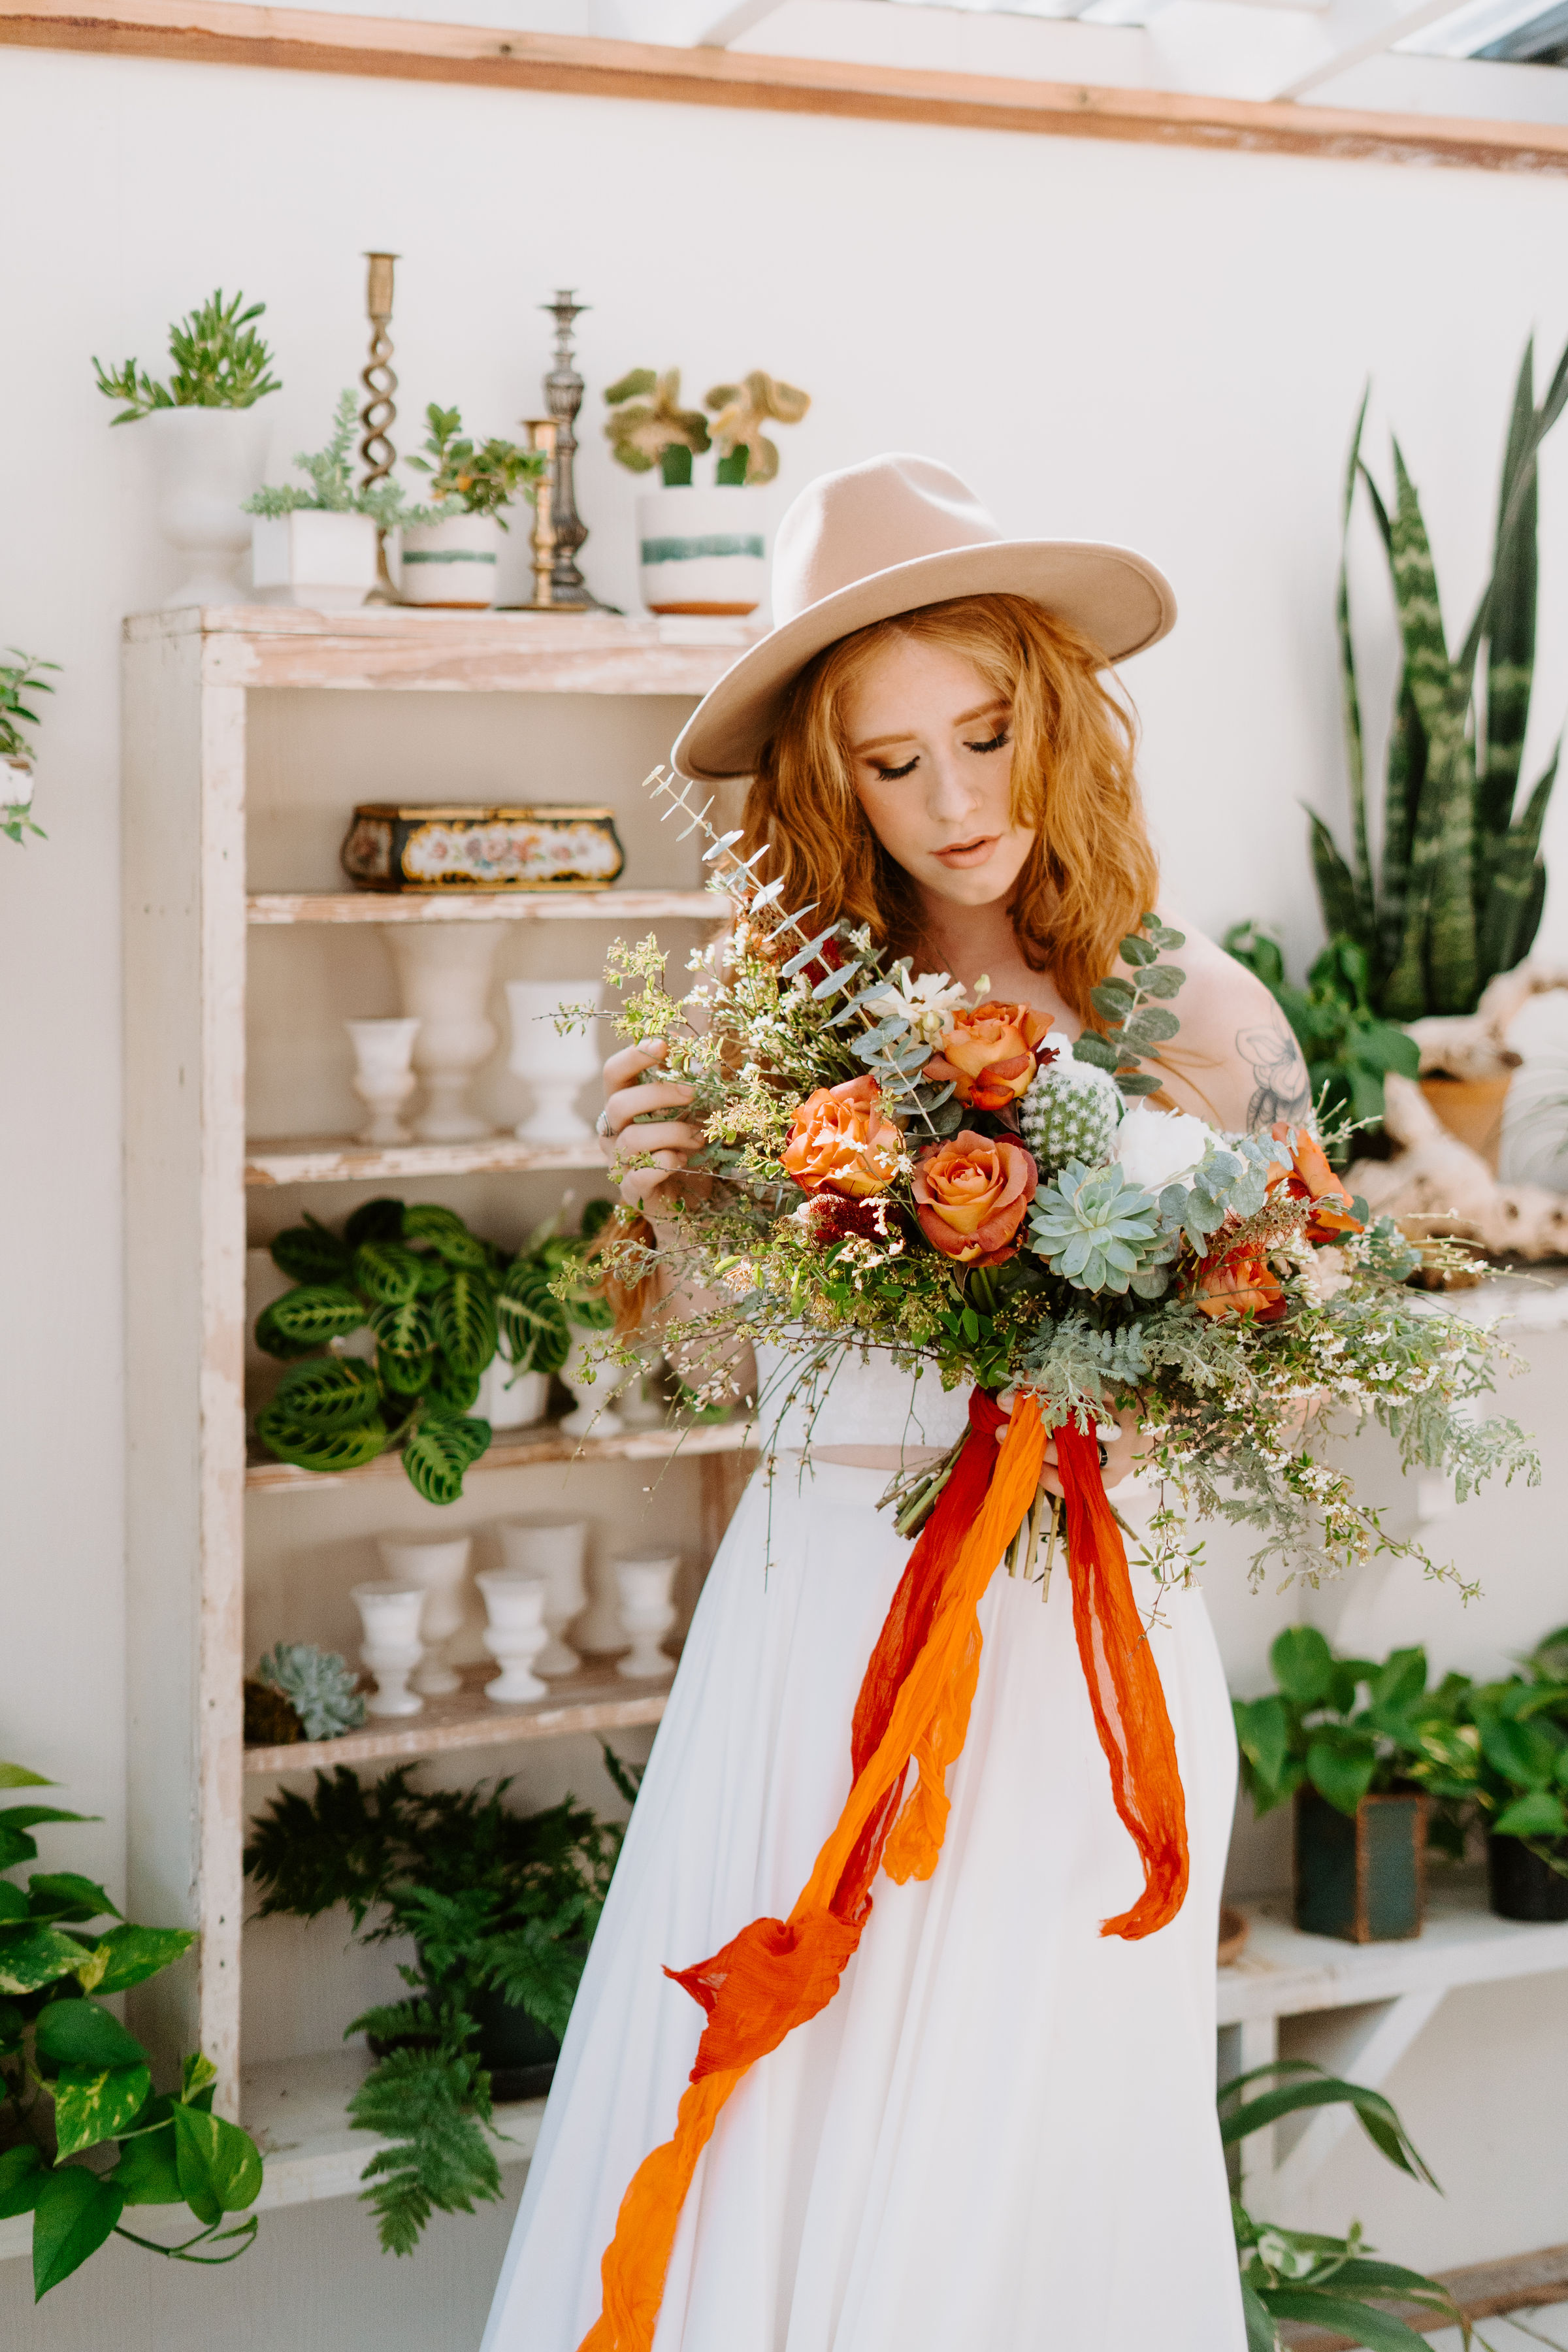 house-of-dirt-dallas-elopement-sydney-and-ryan-photography-29.jpg